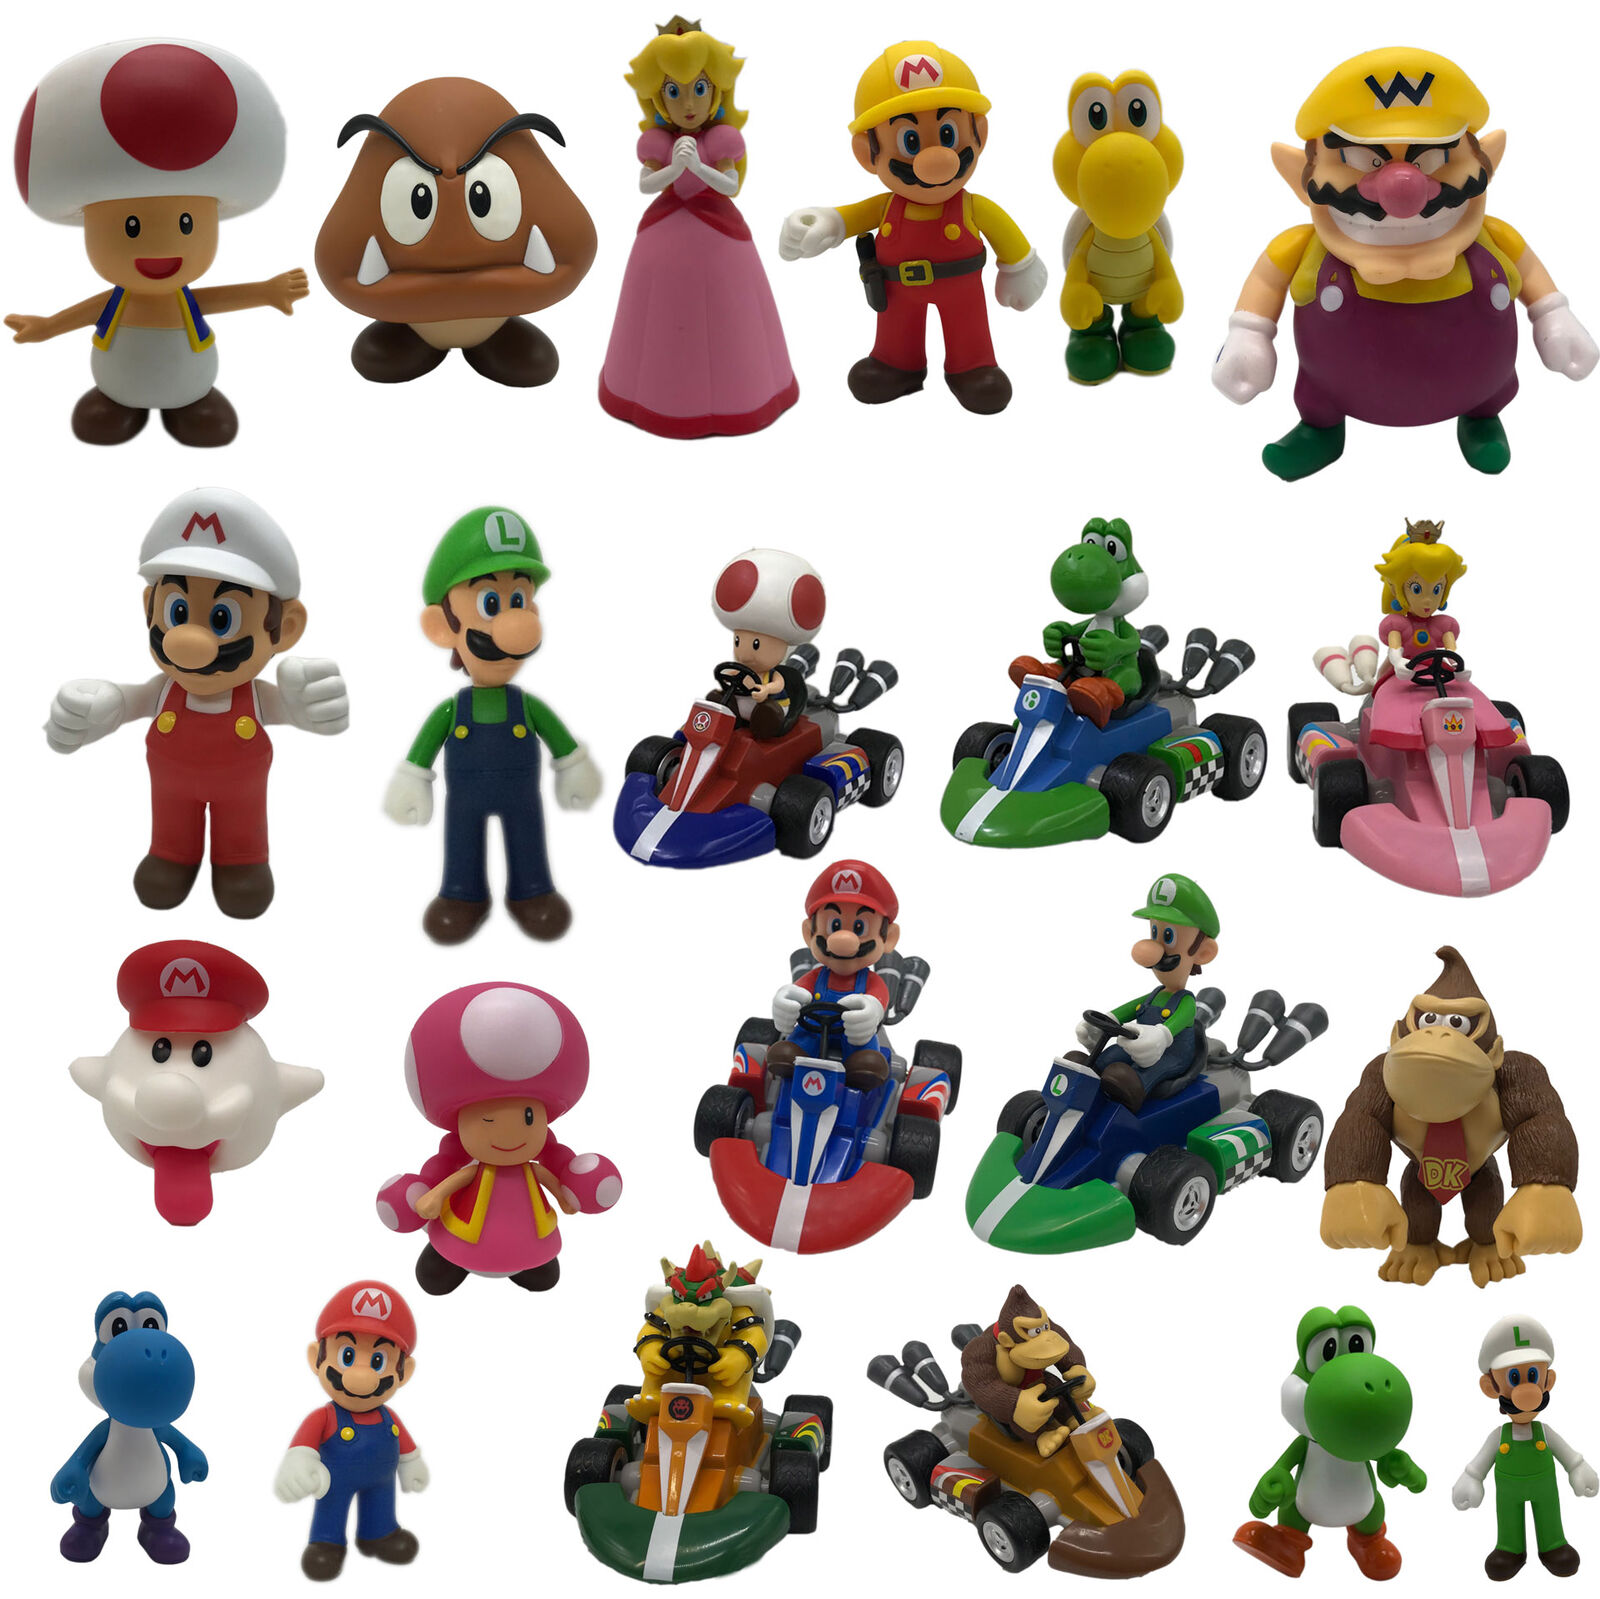 Characters Collectible Plastic PVC Action Figure Toy 1 of 1 See More